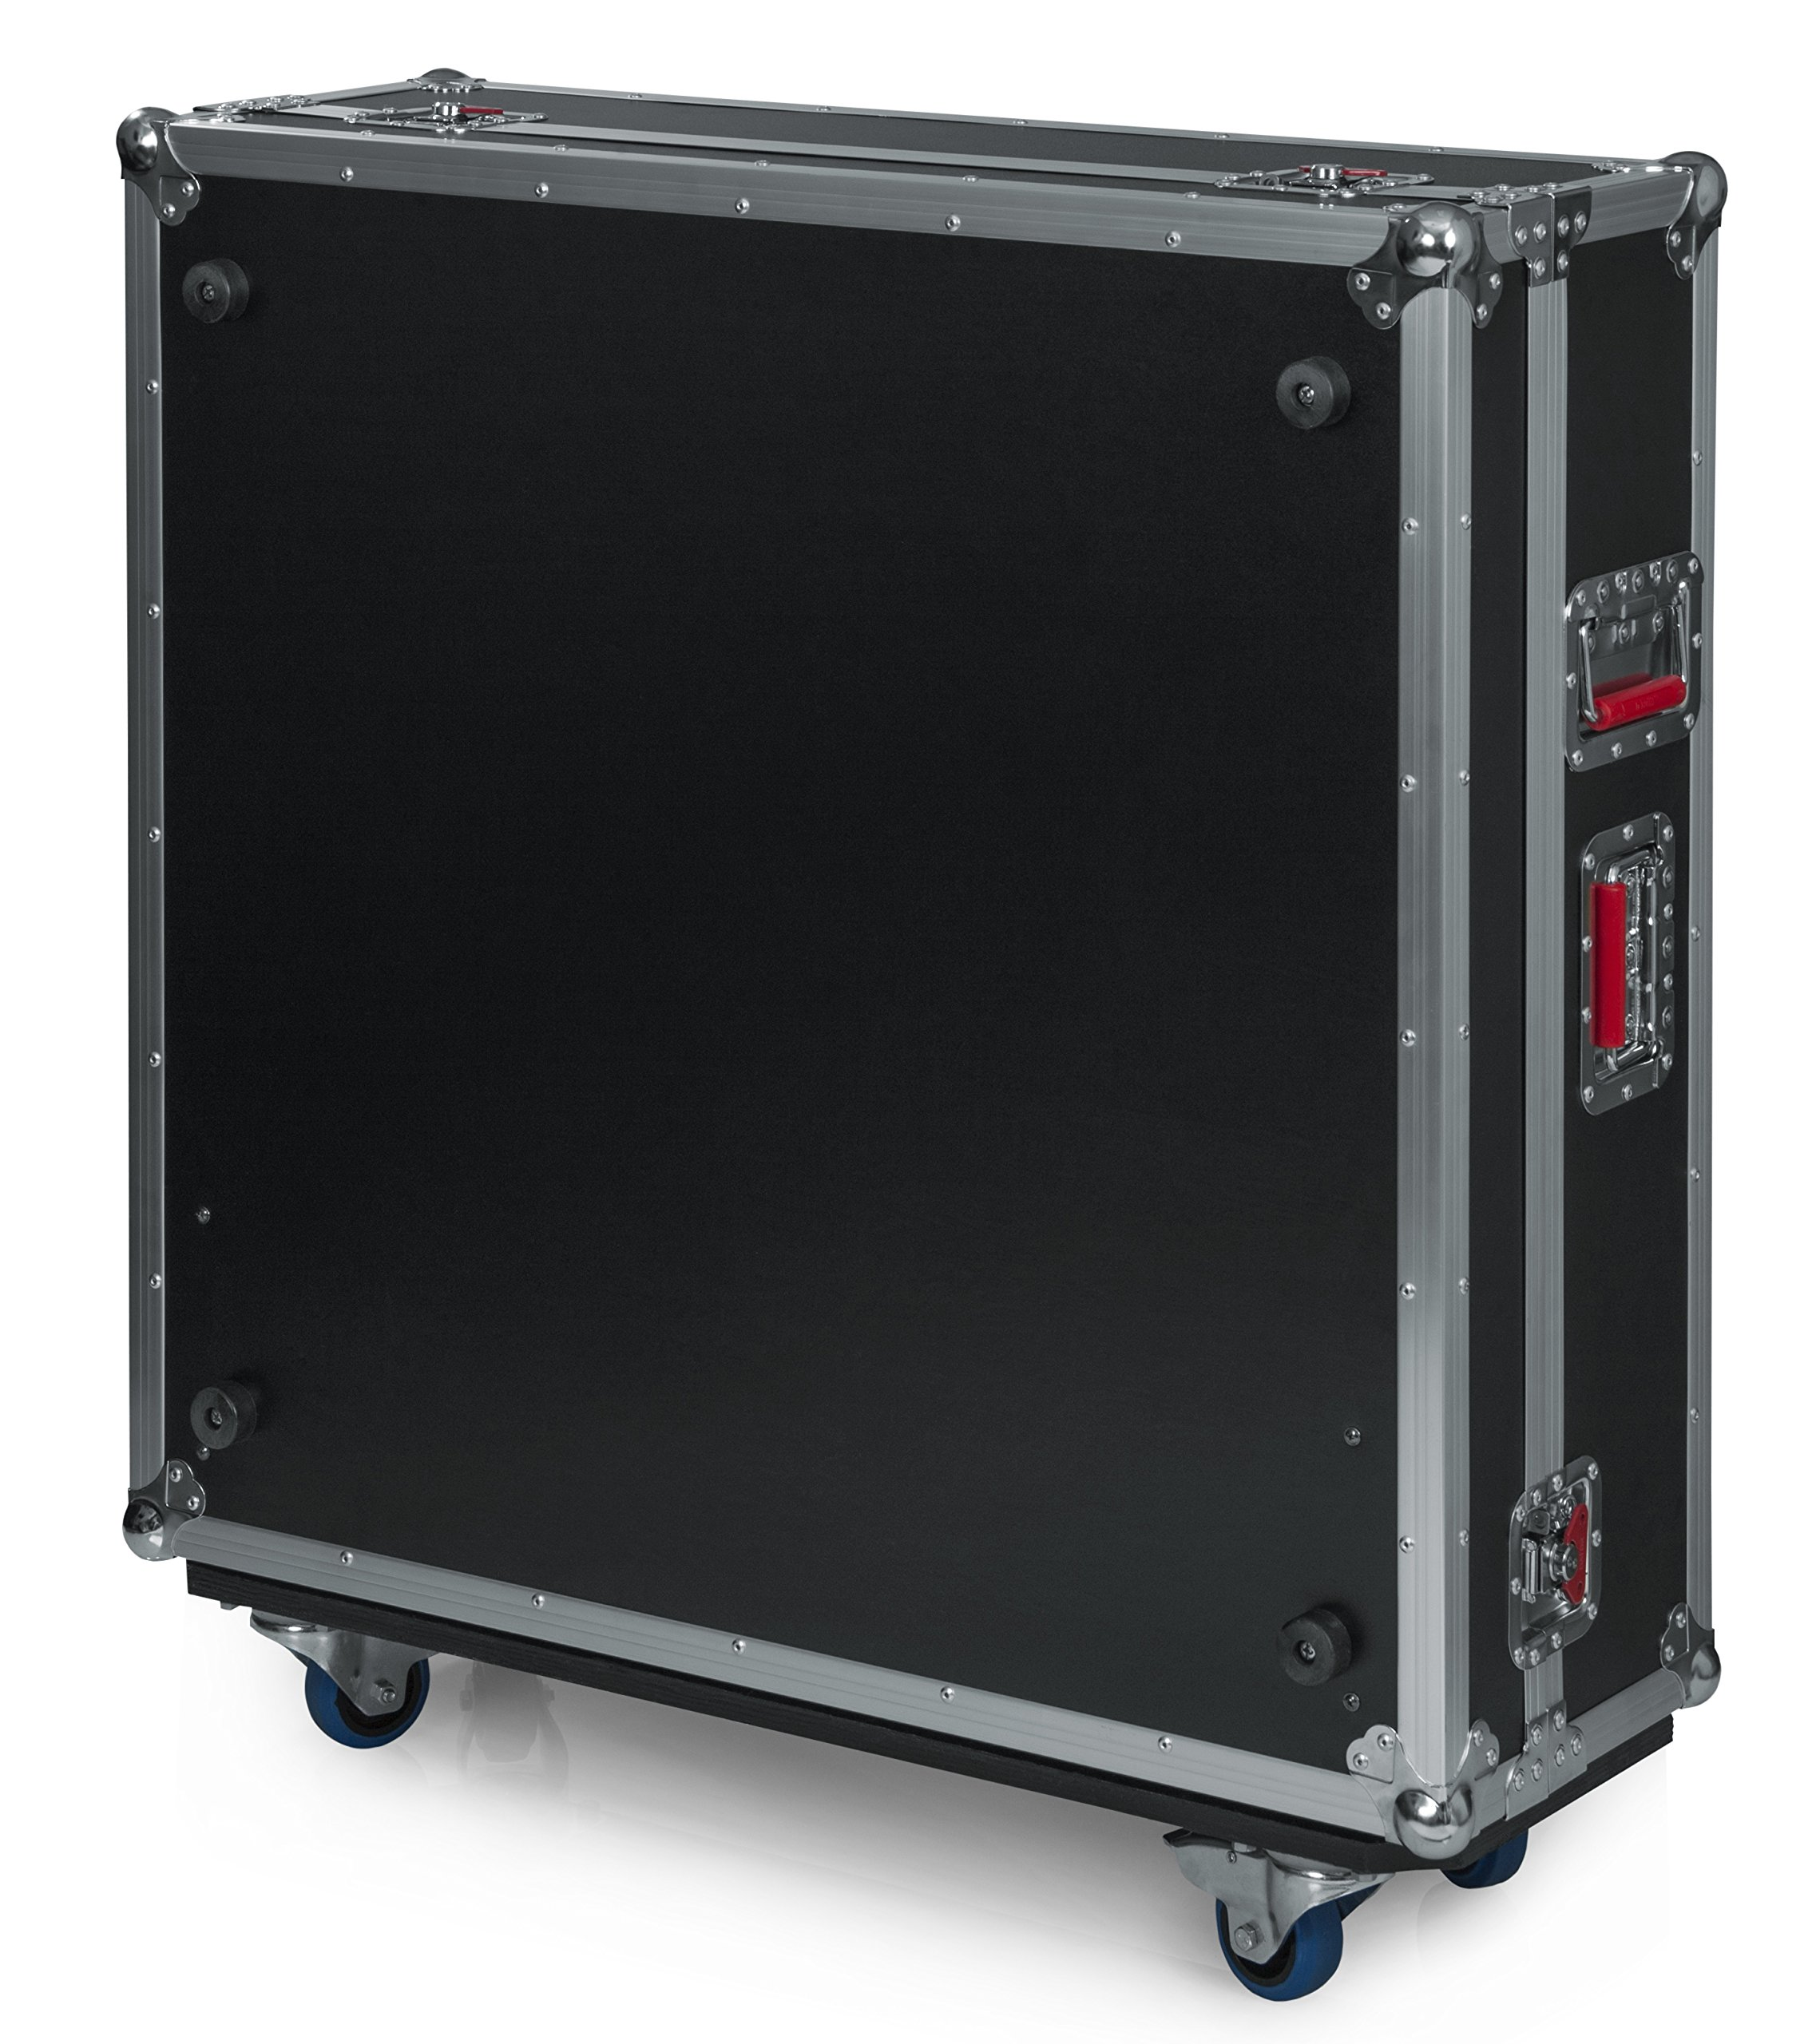 Gator Cases G-TOUR ATA Style Road Case - Custom Fit for Yamaha TF5 Mixer with Dog House and Heavy Duty 4'' Casters; (G-TOURYAMTF5)